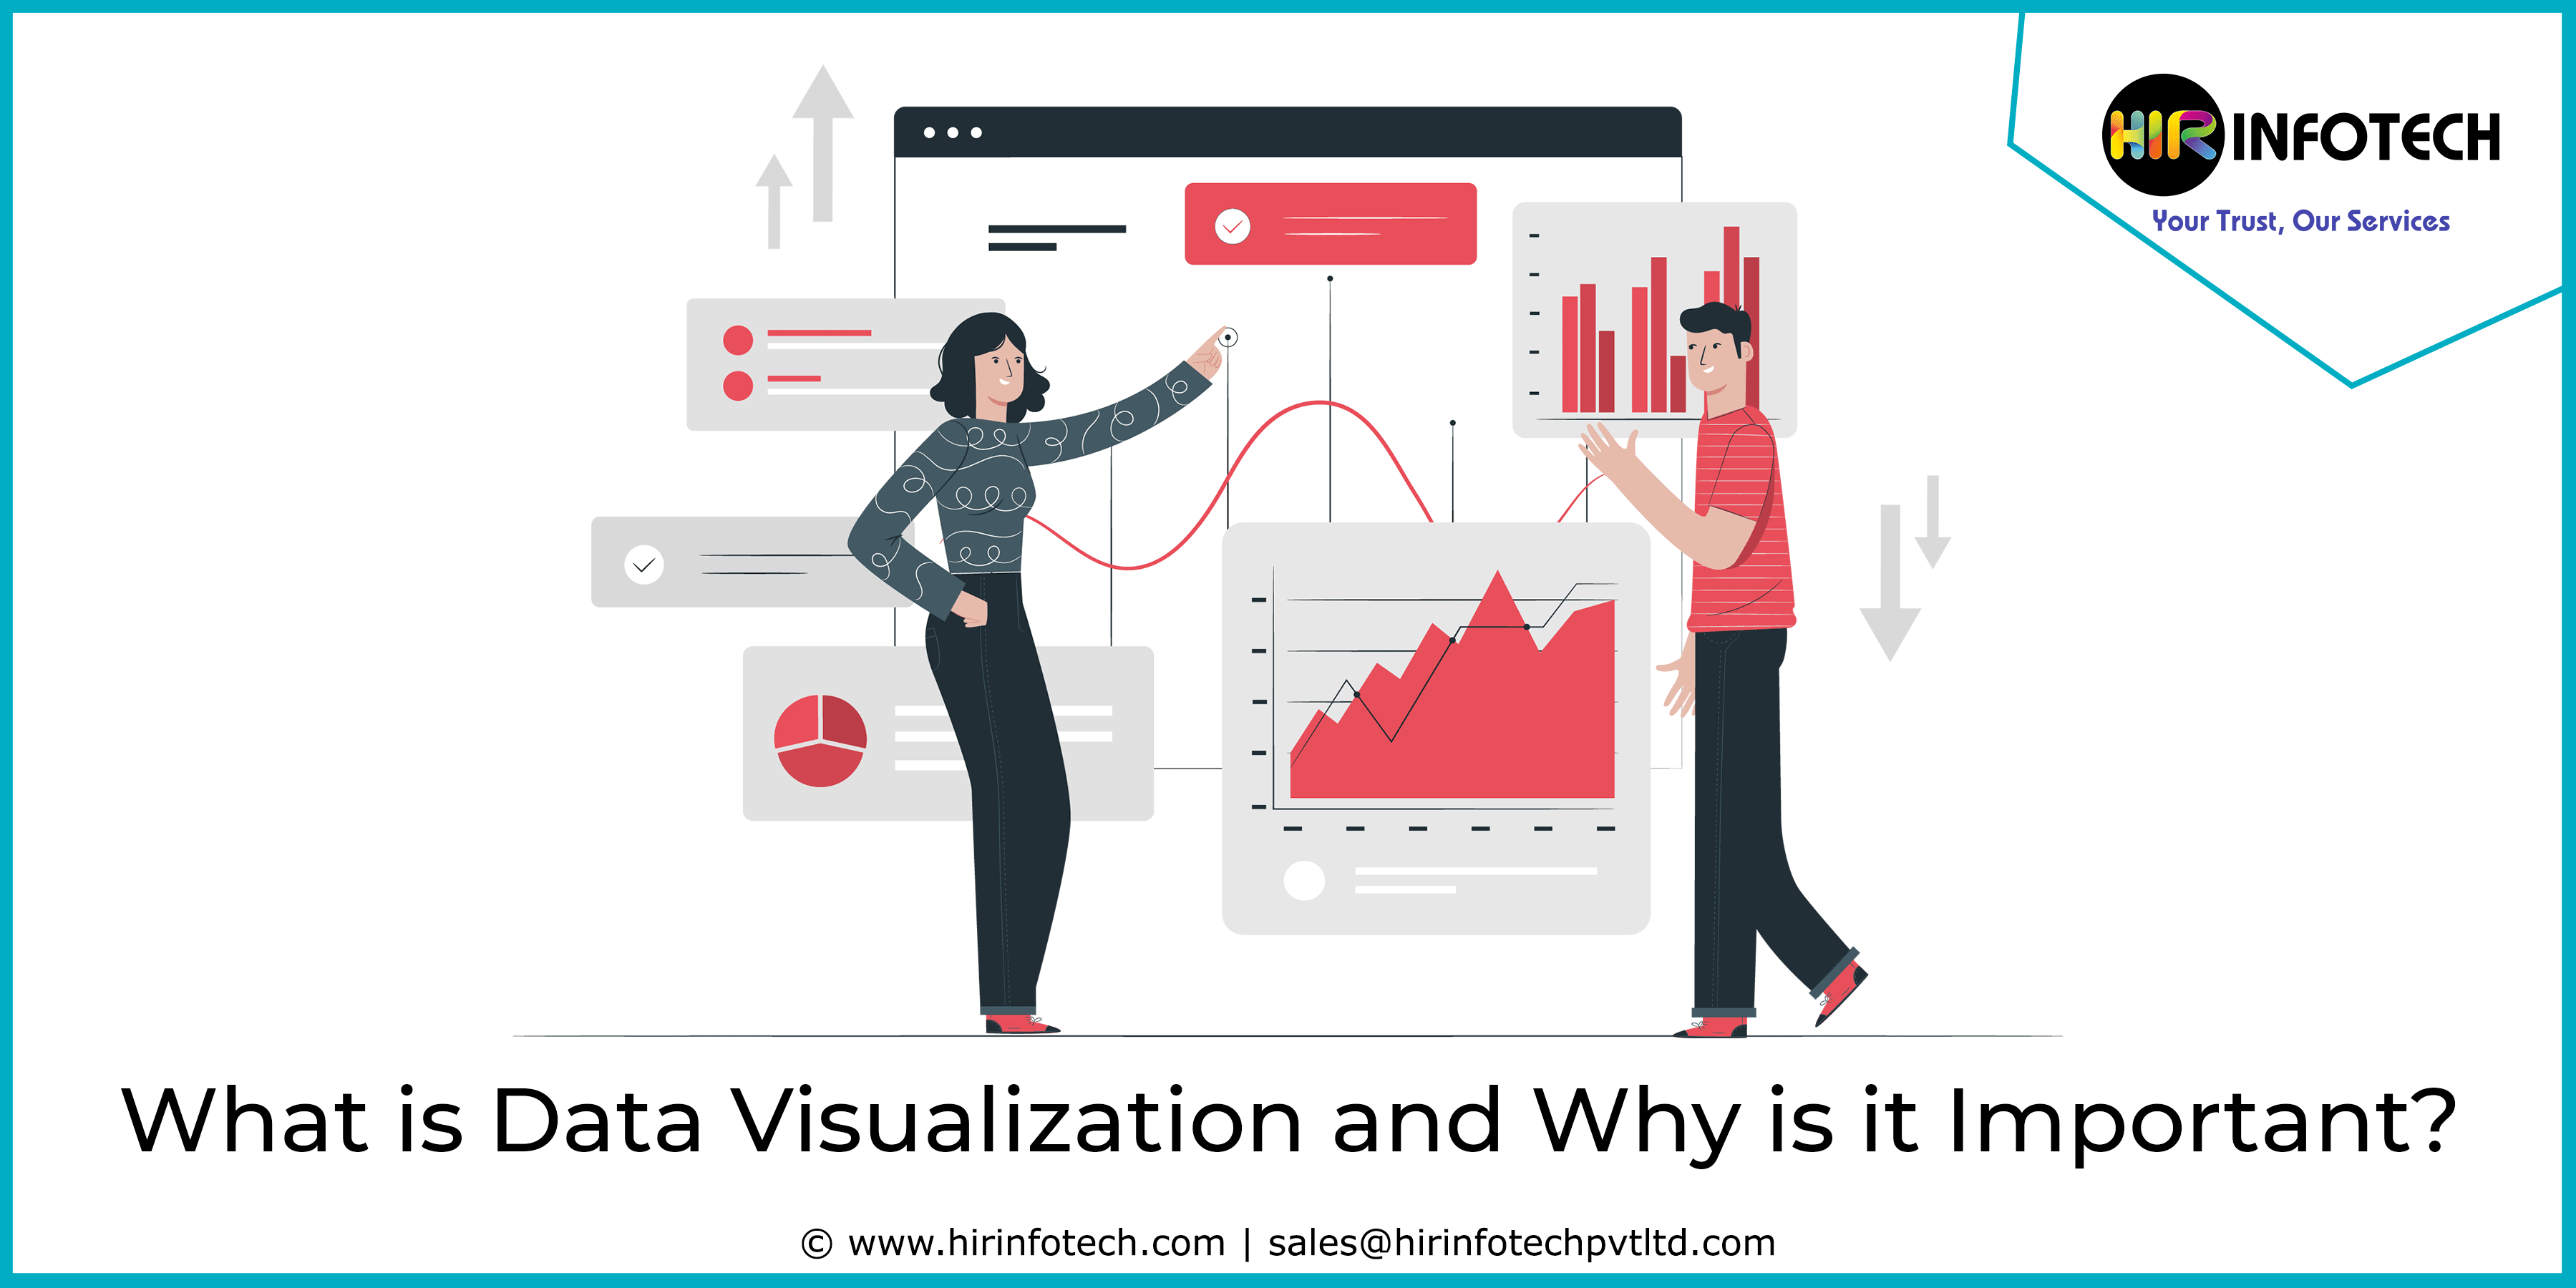 Data Visualization, Data Visualization tool, Data Visualtization Technique, Data Processing, Data Entry, Data